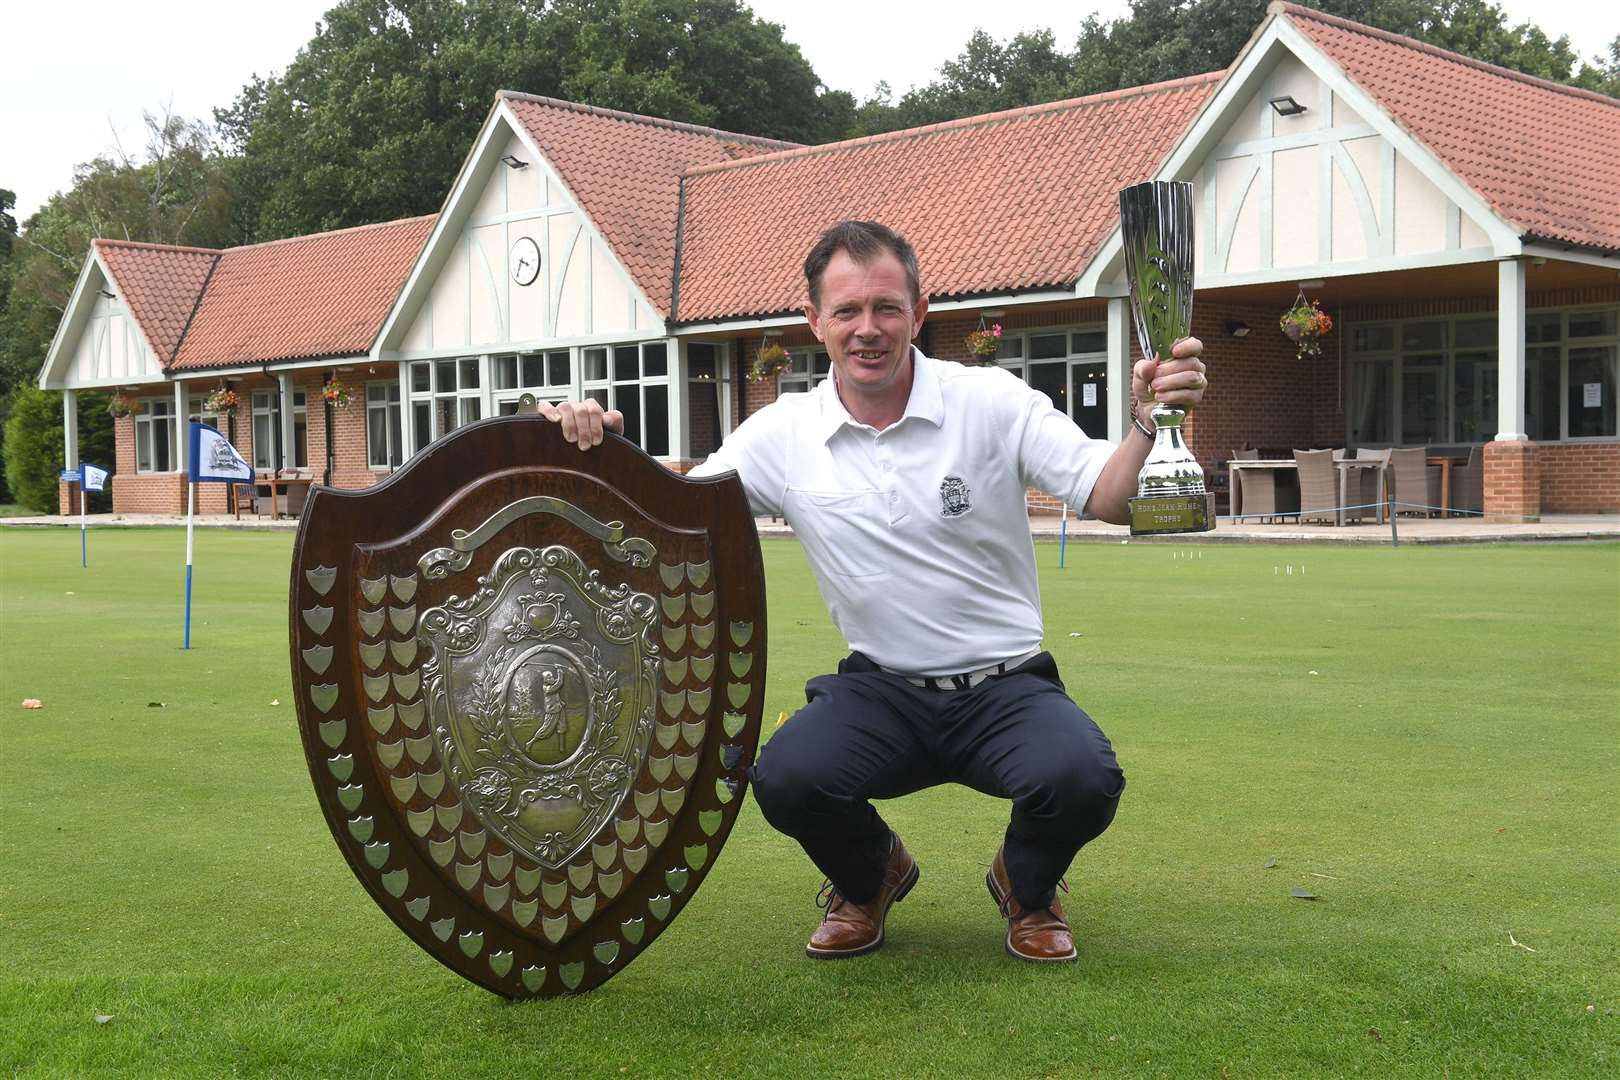 ANT WAGSTAFF, du Newark Golf Club, qui a remporté le trophée individuel de Notts Alliance.